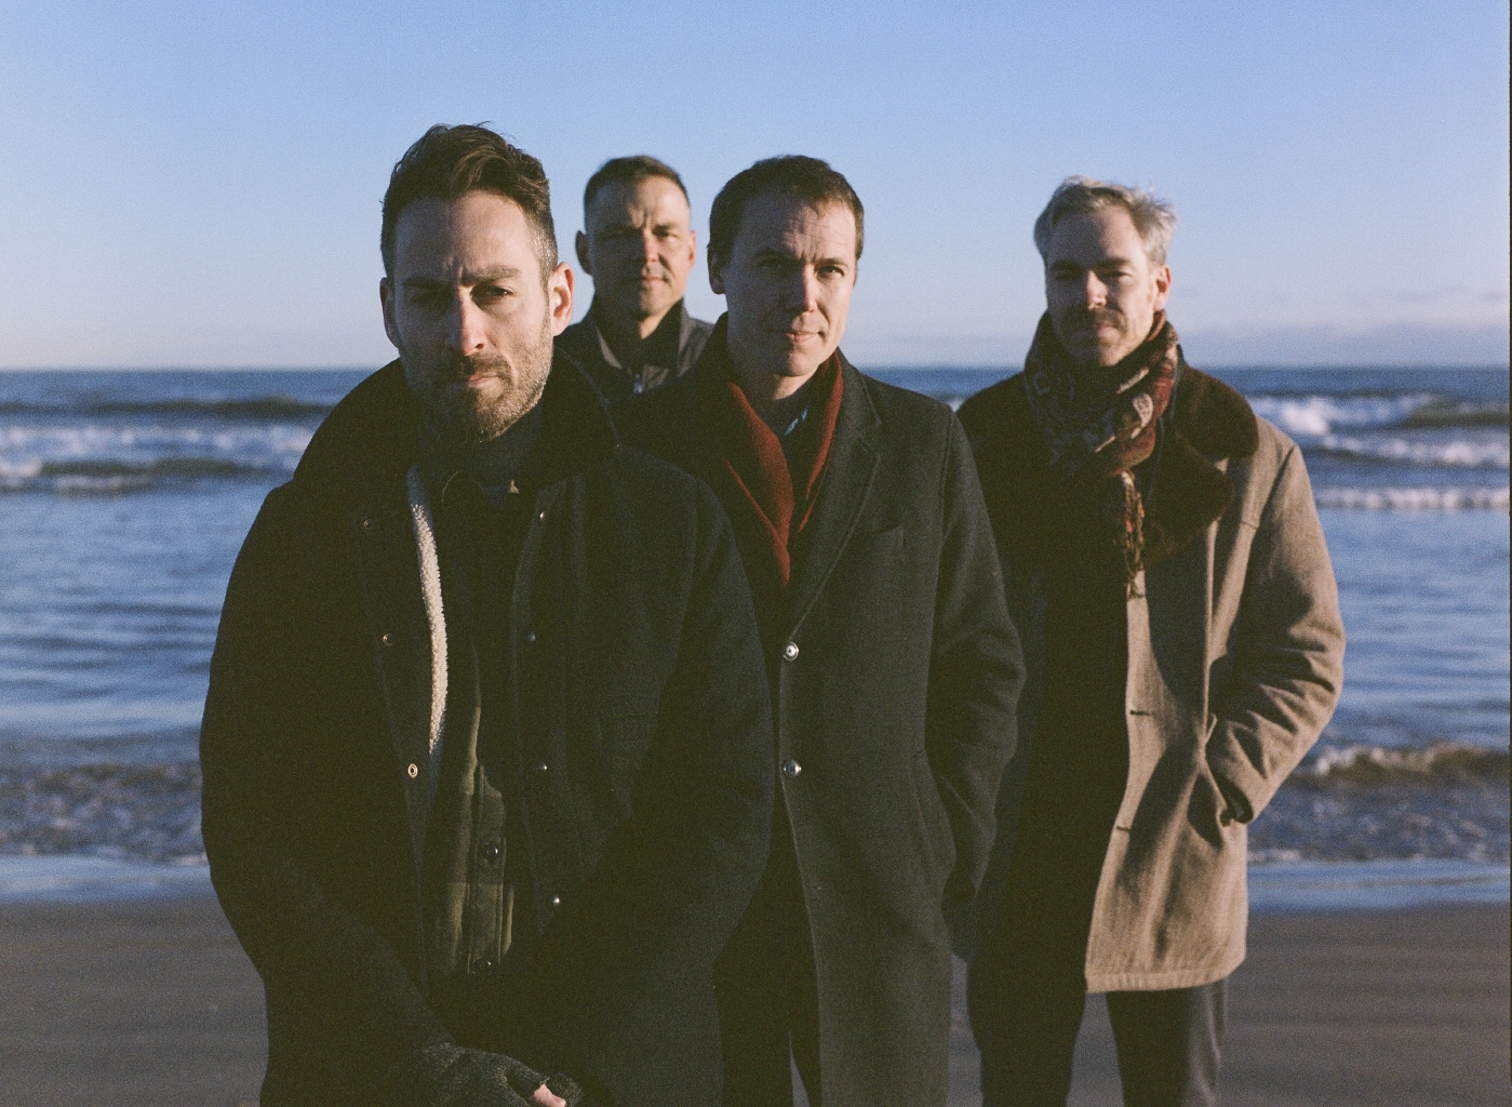 LP3: Ponle play al nuevo disco de American Football